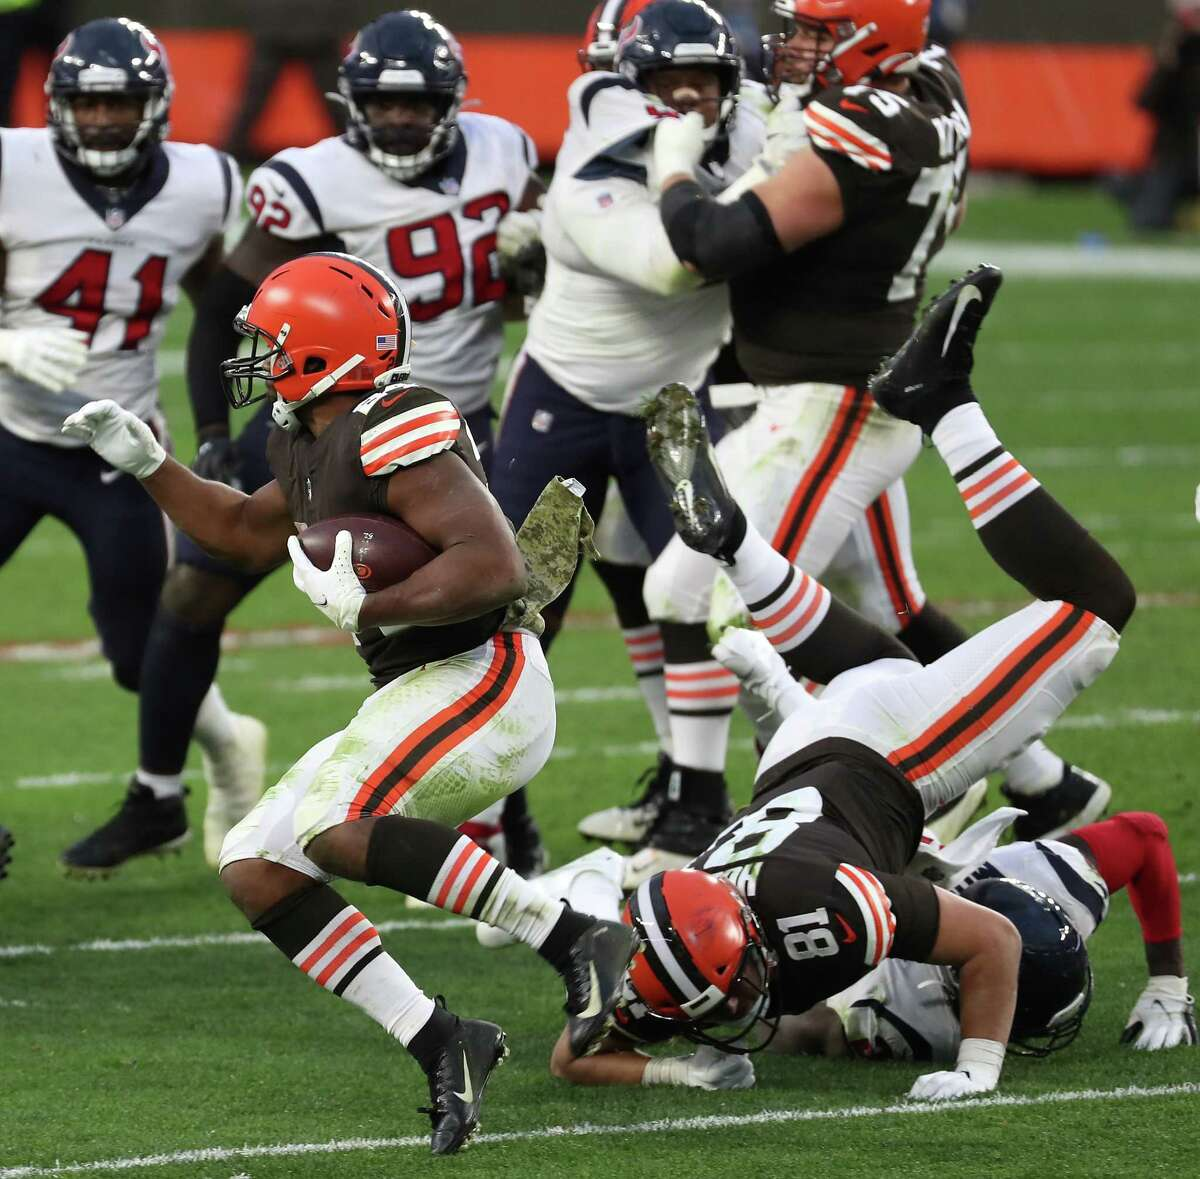 Cleveland Browns running back Nick Chubb (24) runs around the Houston Texans defense for a 59-yard run to put the game away during the fourth quarter of an NFL football game at FirstEnergy Stadium Sunday, Nov. 15, 2020, in Cleveland.